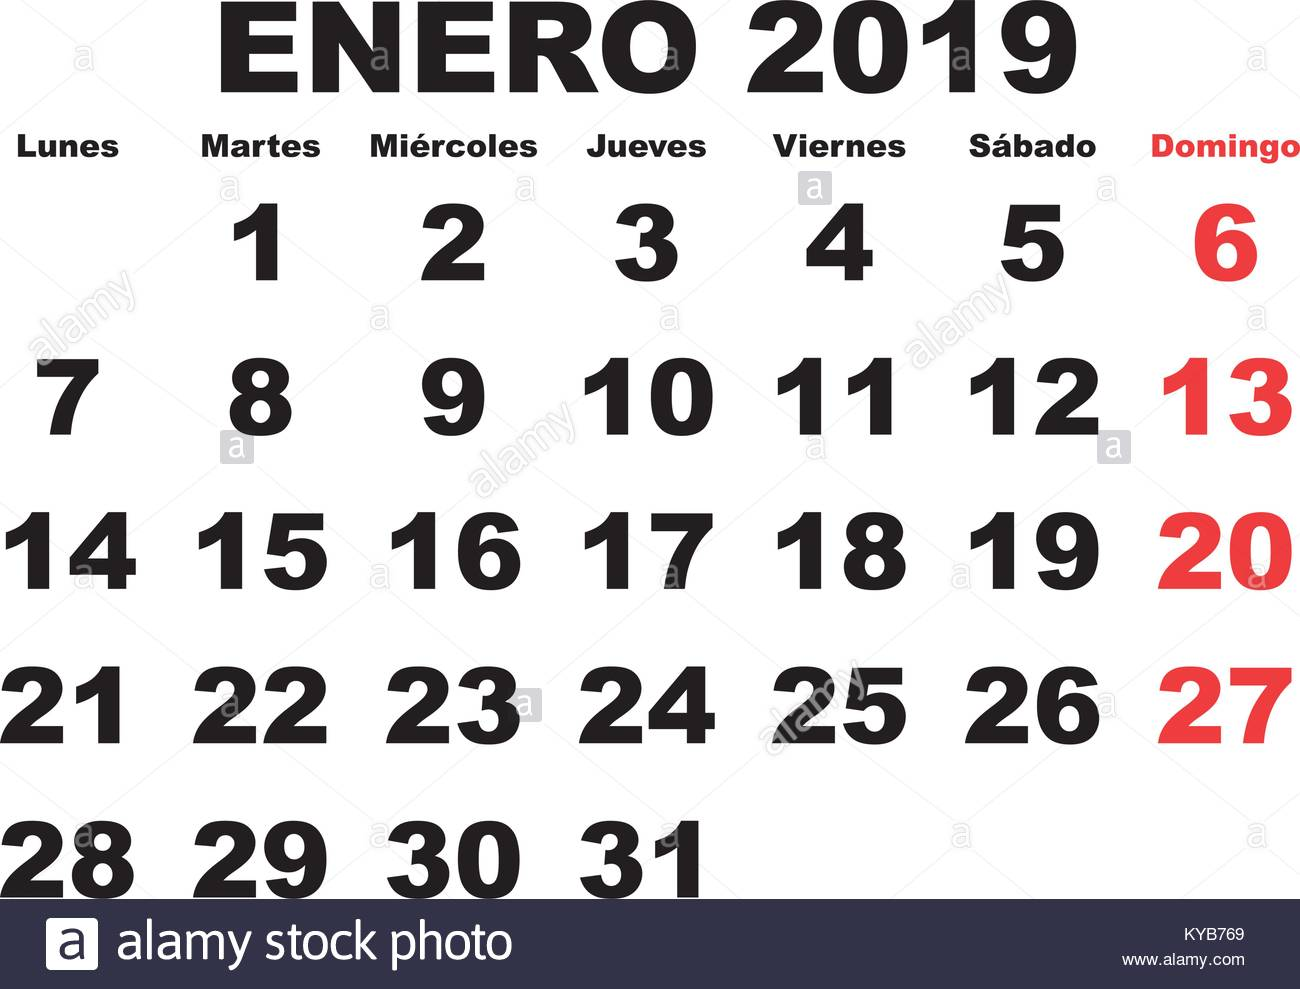 Calendario 2019 Mes A Mes.January Month In A Year 2019 Wall Calendar In Spanish Enero 2019